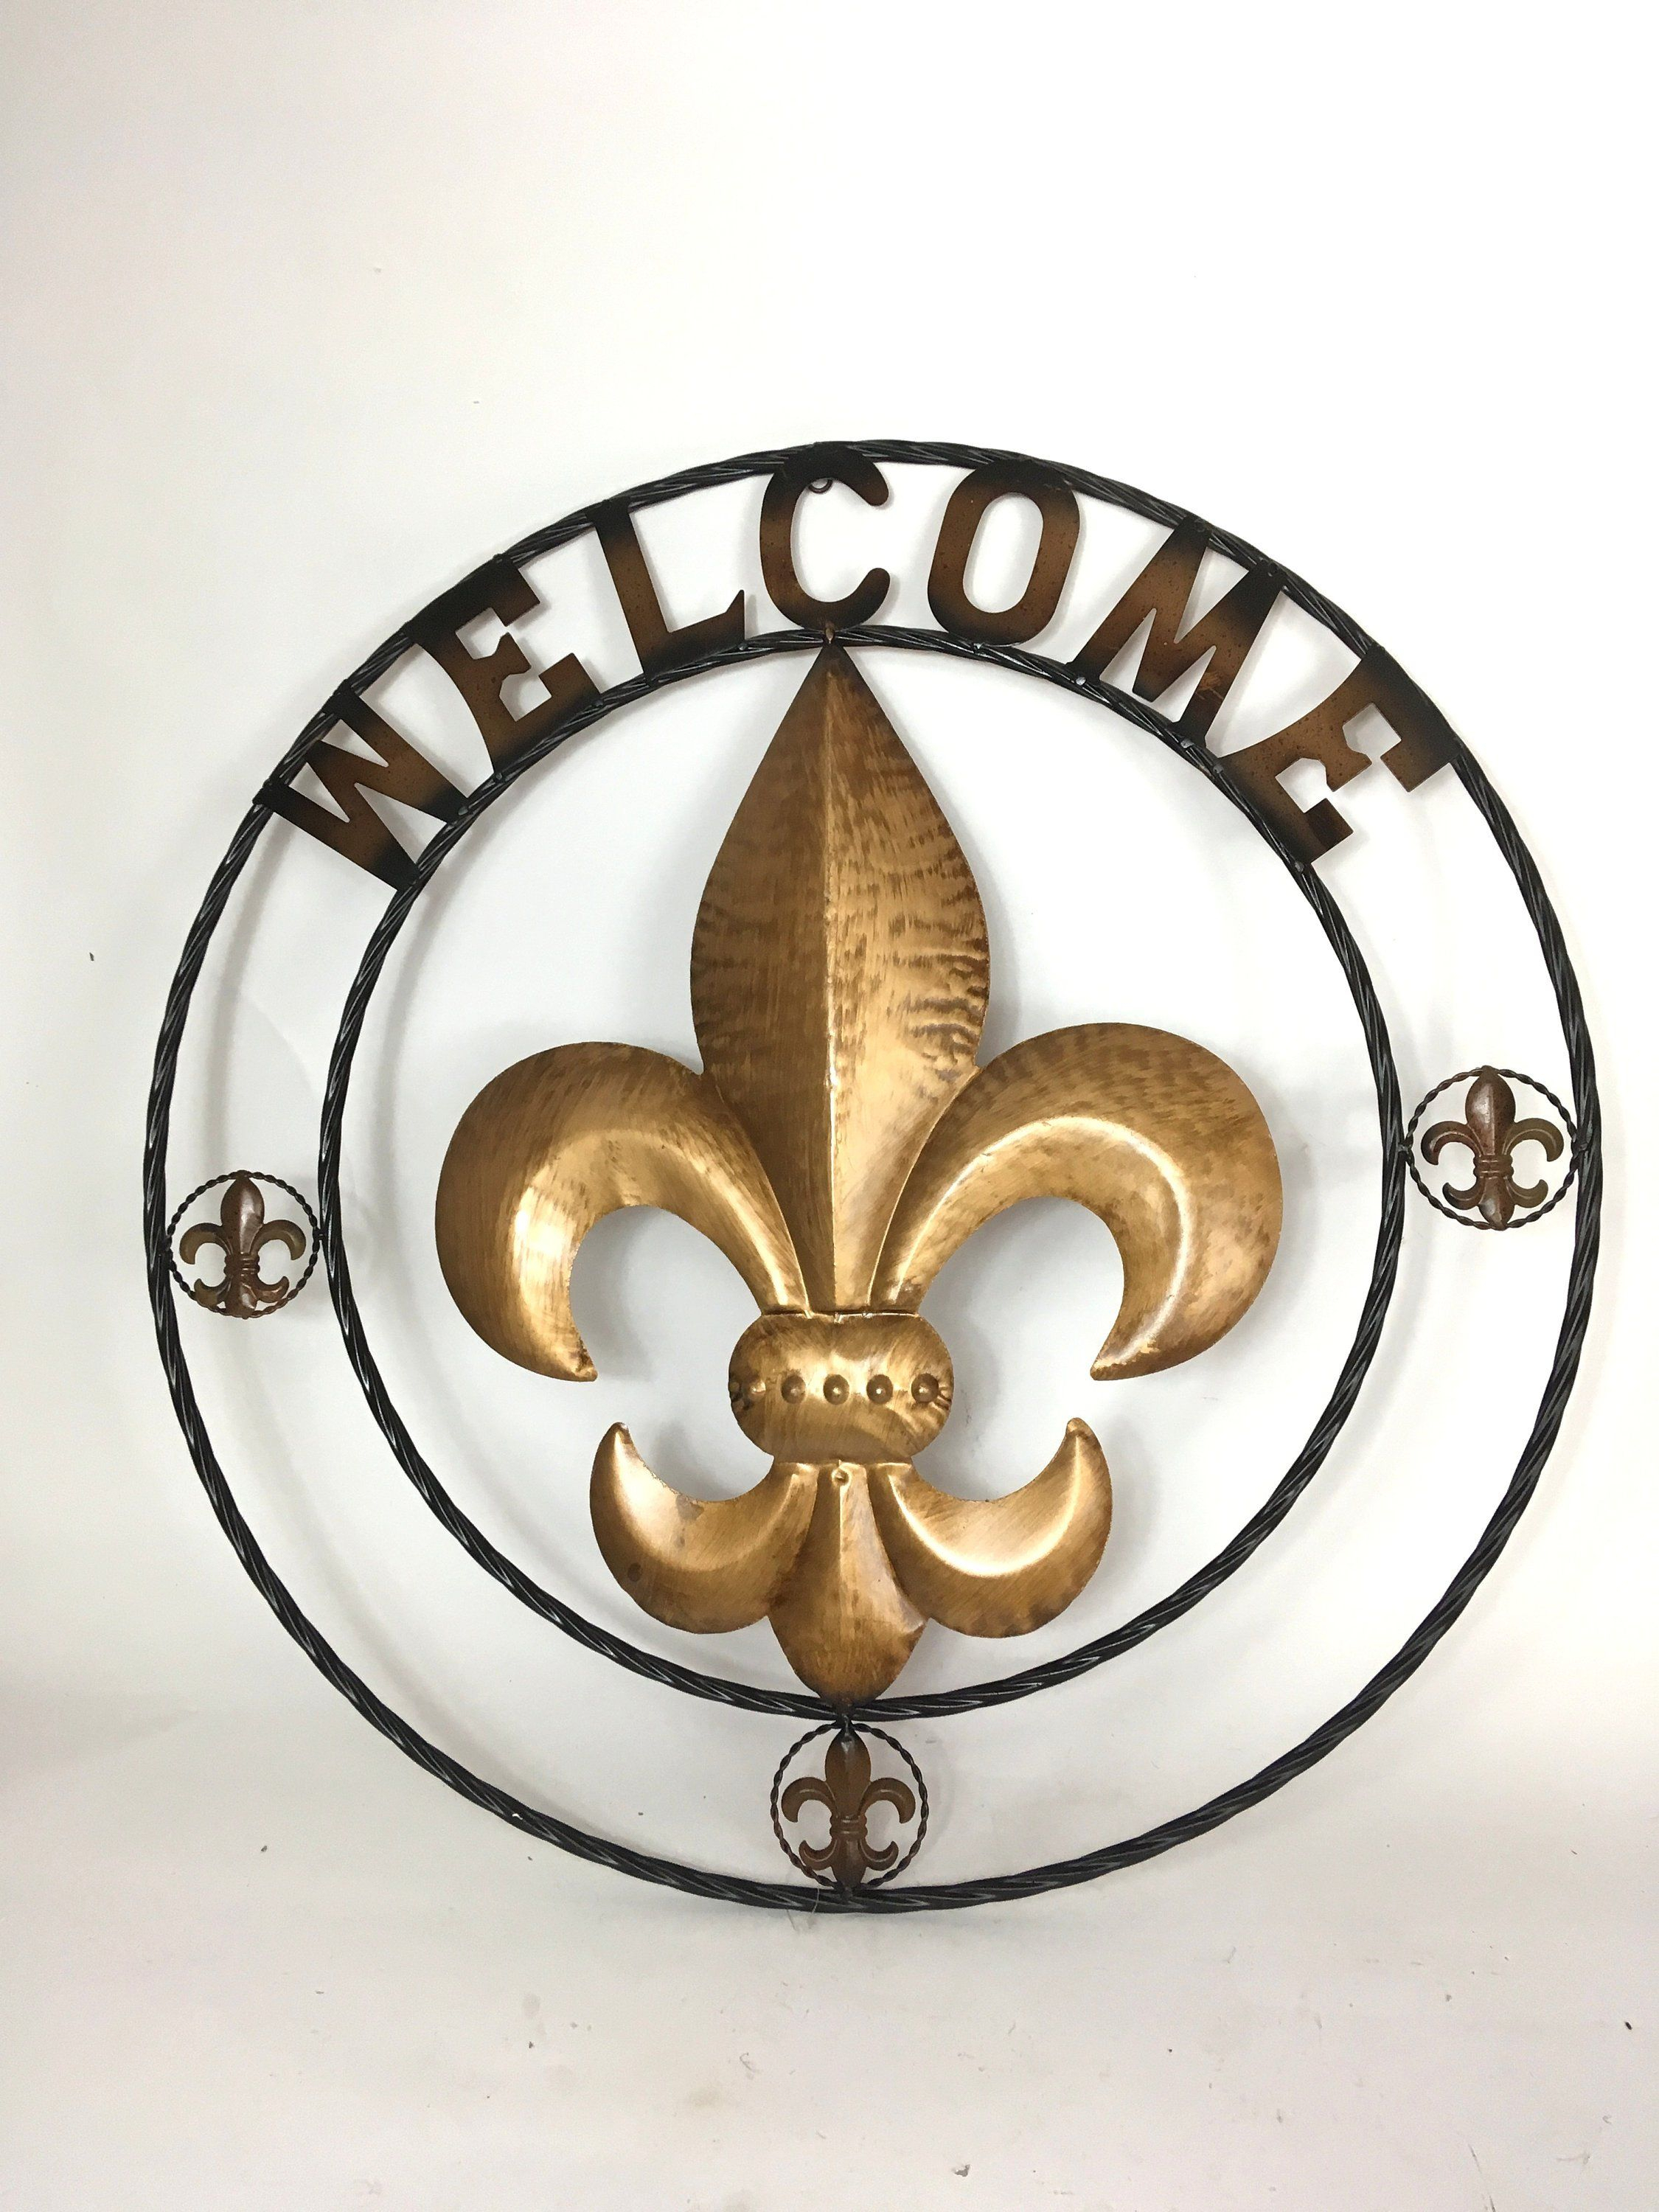 Widely Used Welcome Fleur De Lis / Twisted Circle / Rope Ring / Wall Hanging Intended For Metal Rope Wall Sign Wall Decor (View 20 of 20)